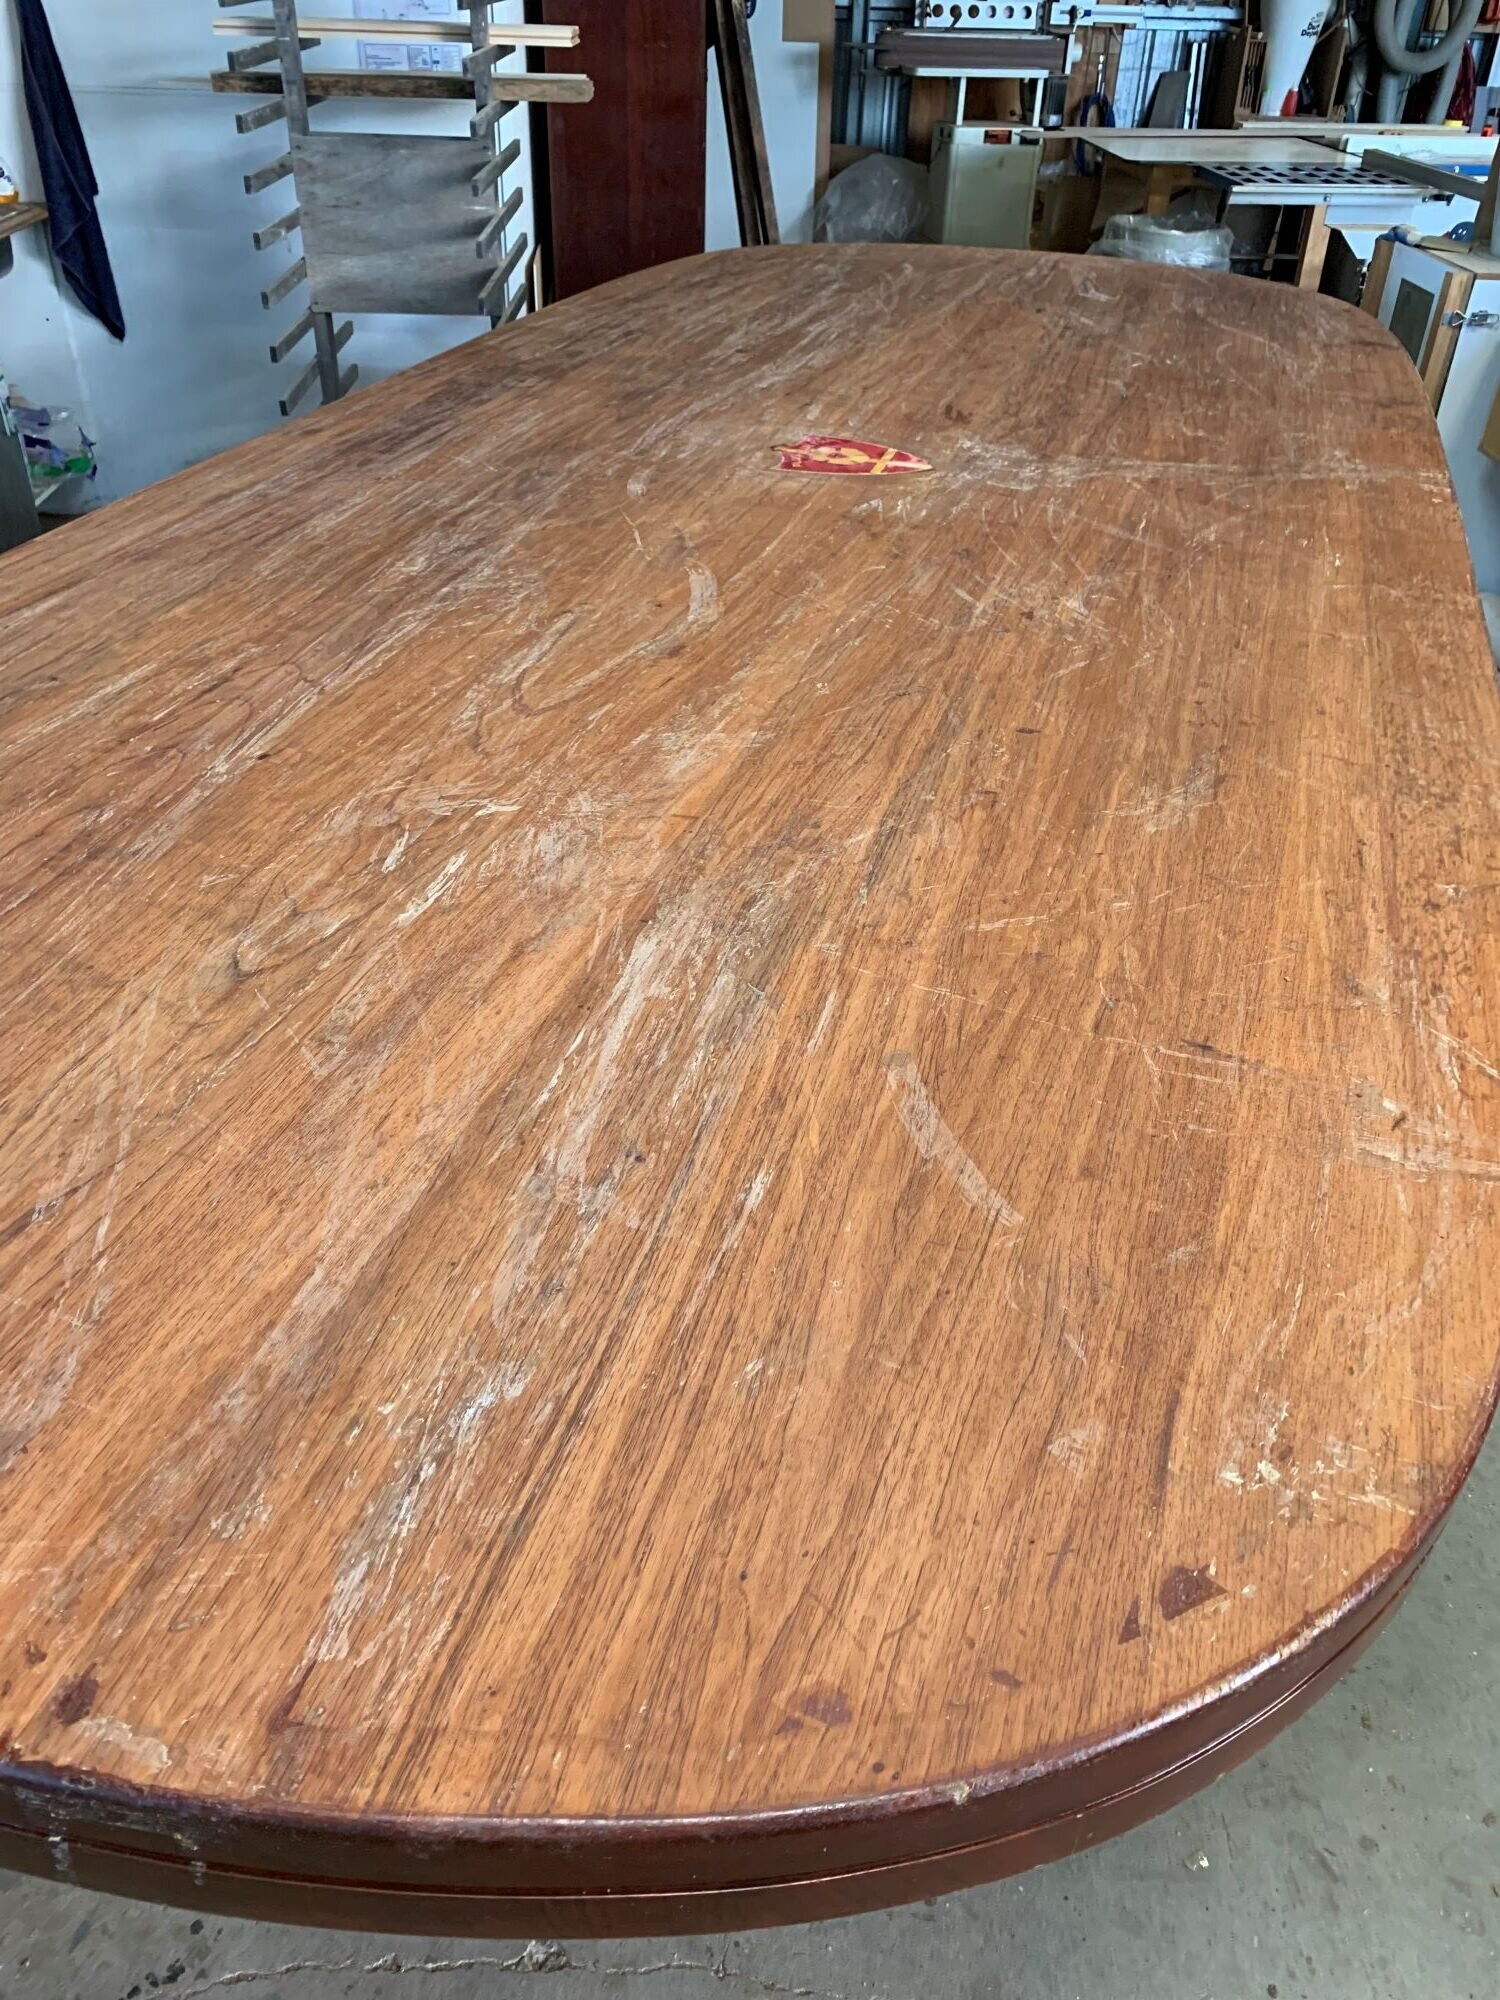 Boardroom table pior to its makeover